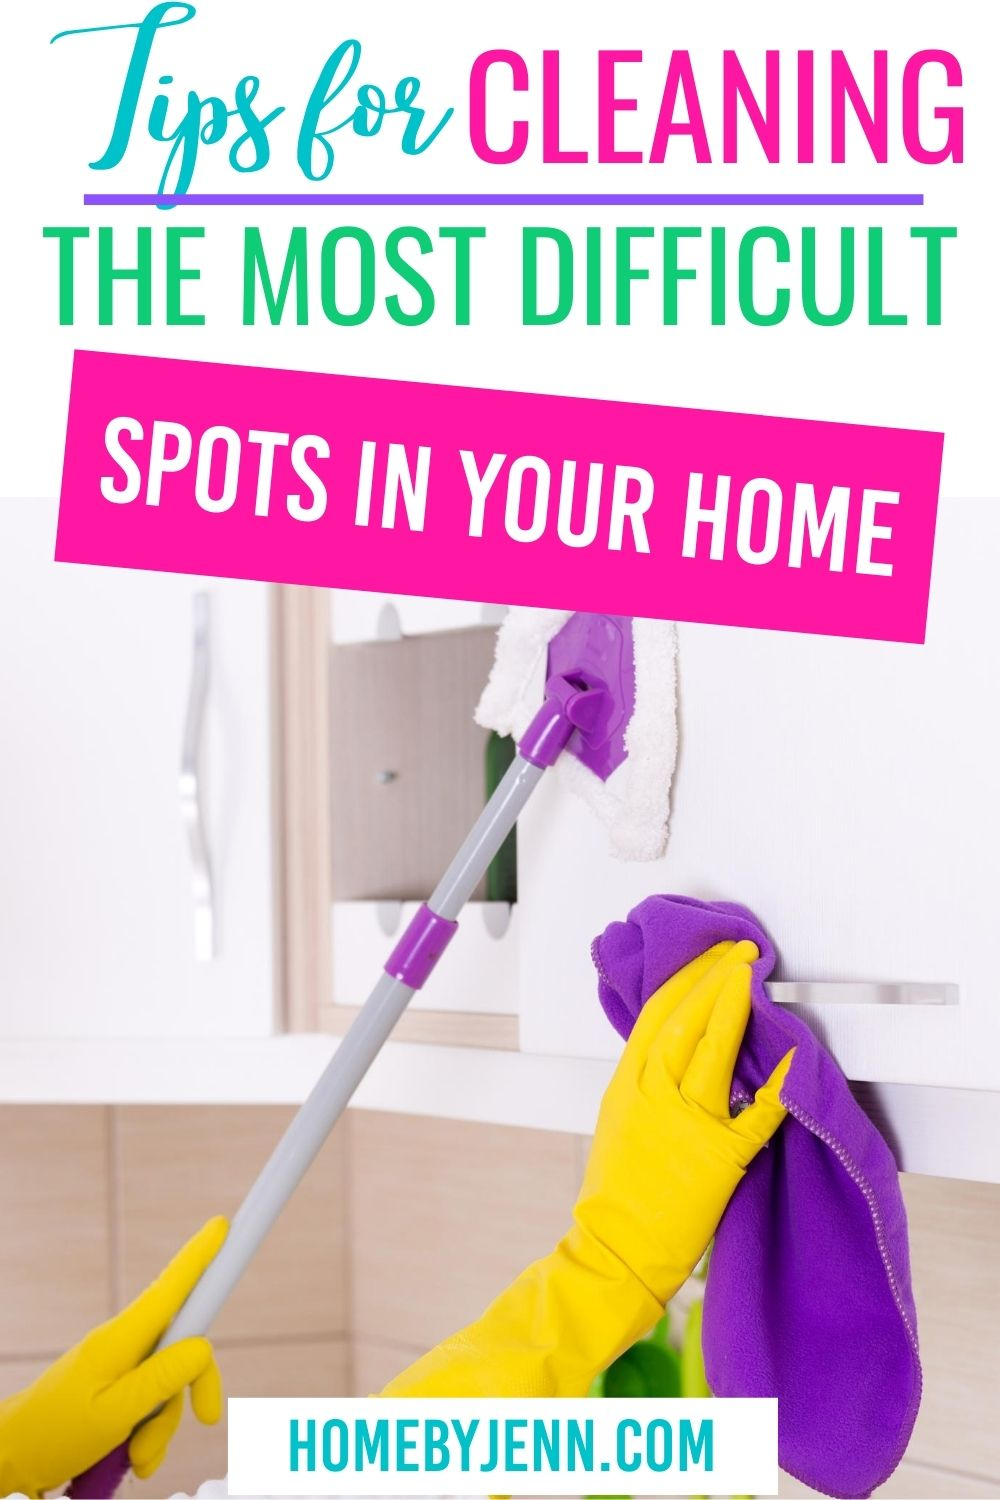 Are you ready to start cleaning the most difficult spots in your home? Luckily I've got some of the best cleaning tips to make that mountain into a molehill. Your house will be spick and span clean in no time at all. via @homebyjenn